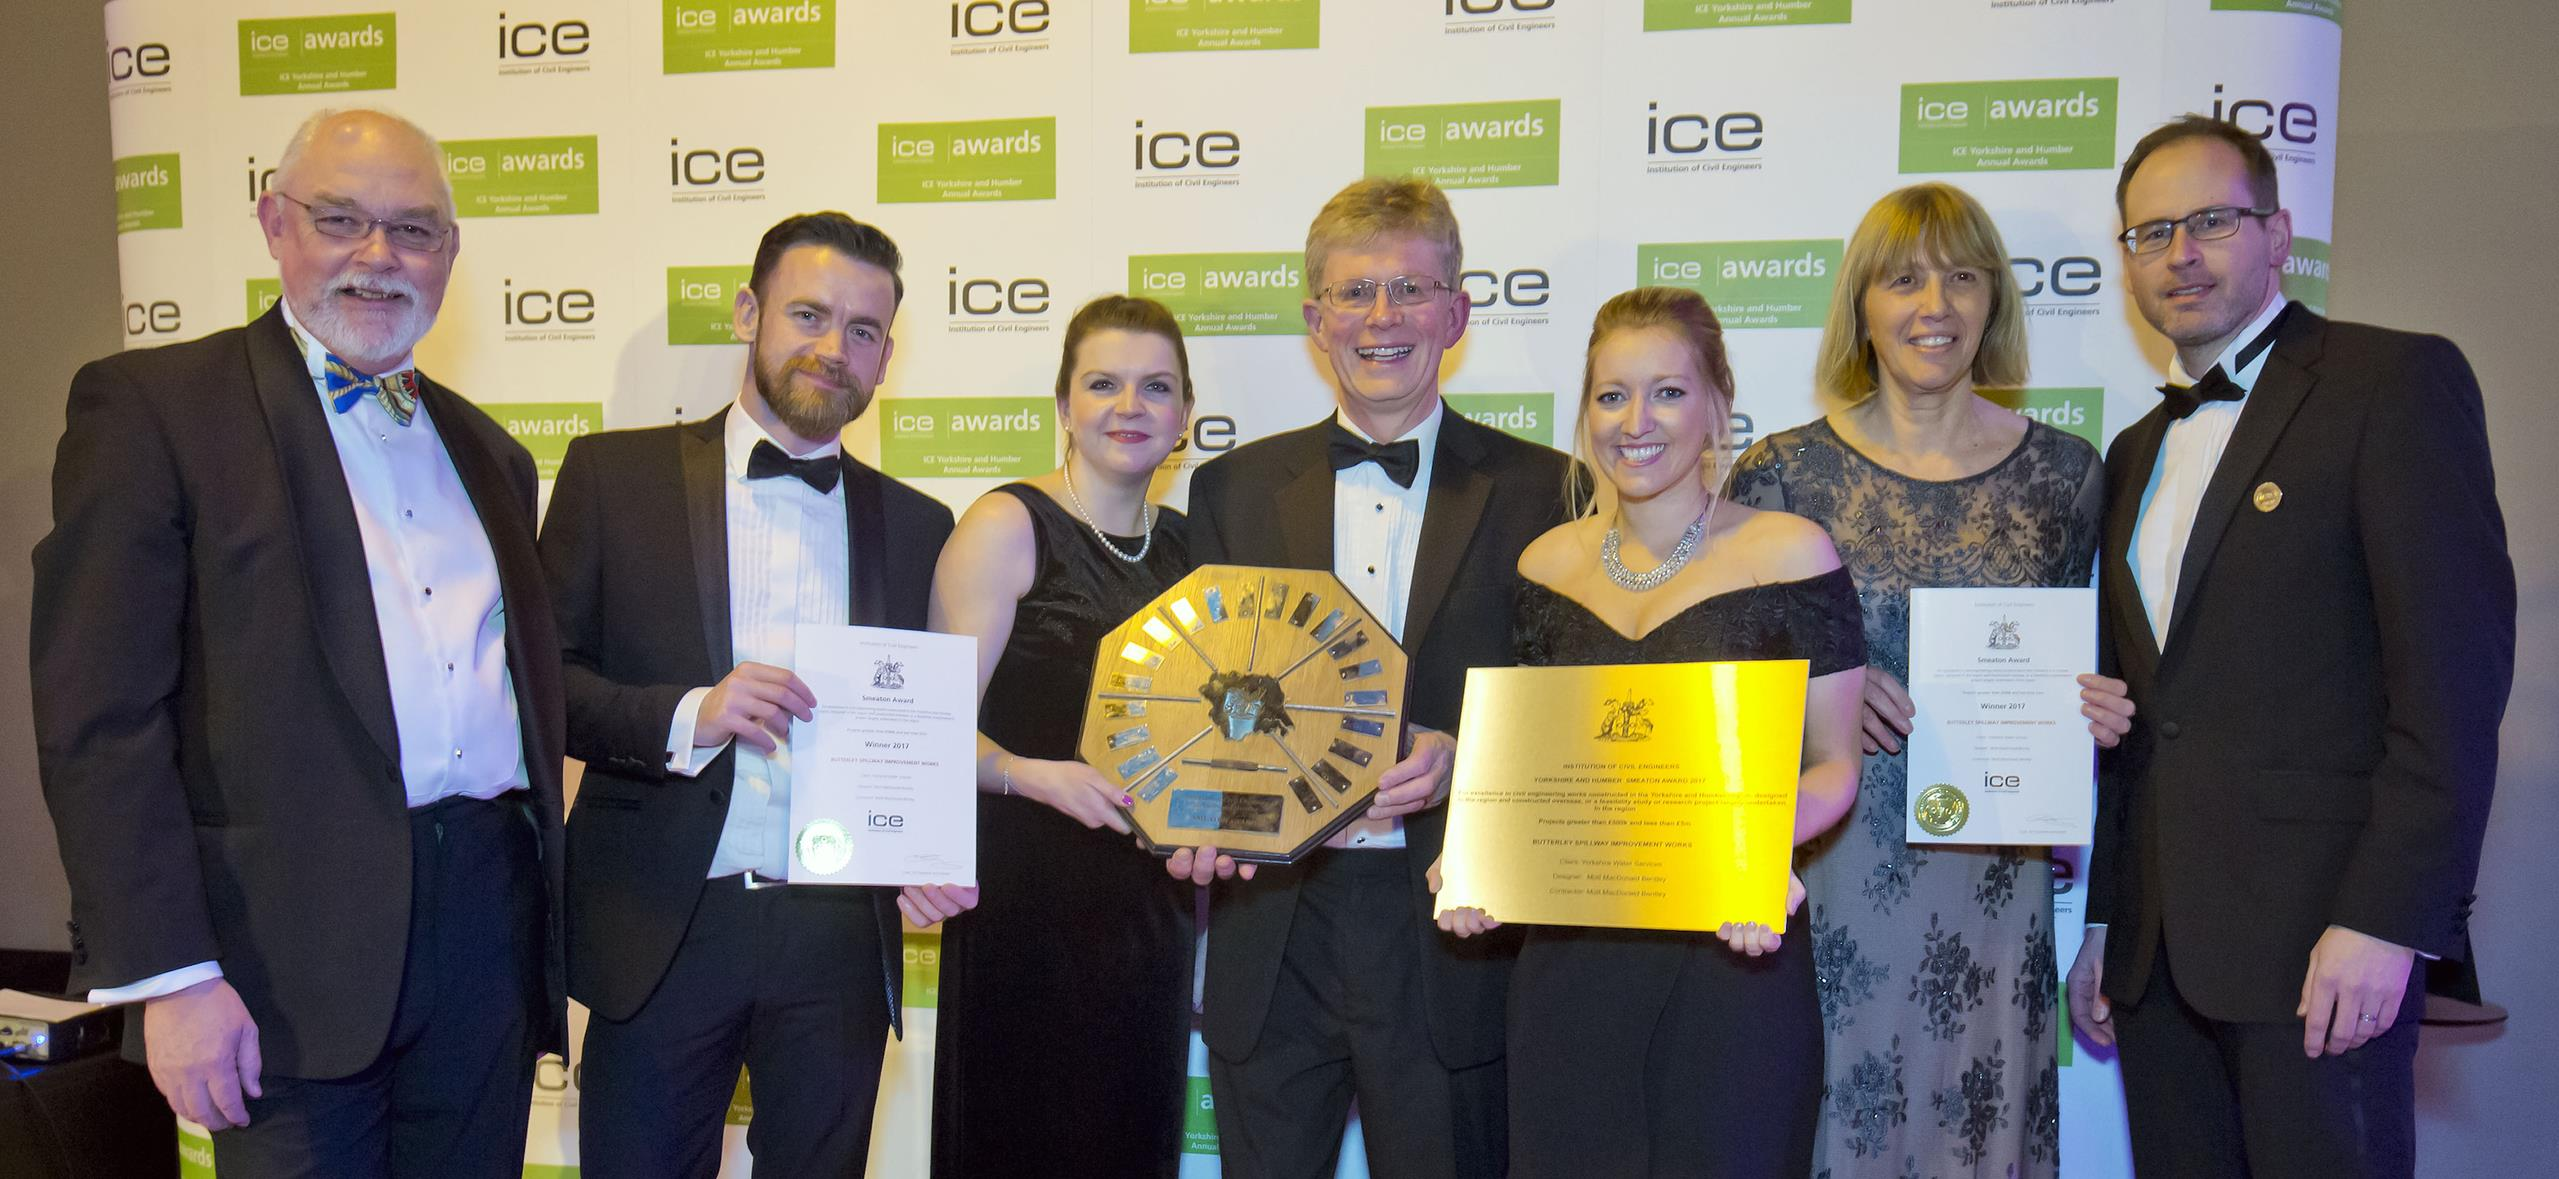 Mott MacDonald Bentley (MMB) was named winner of the prestigious Smeaton Award by the ICE in Yorkshire & Humber for the sympathetic refurbishment of Butterley Spillway